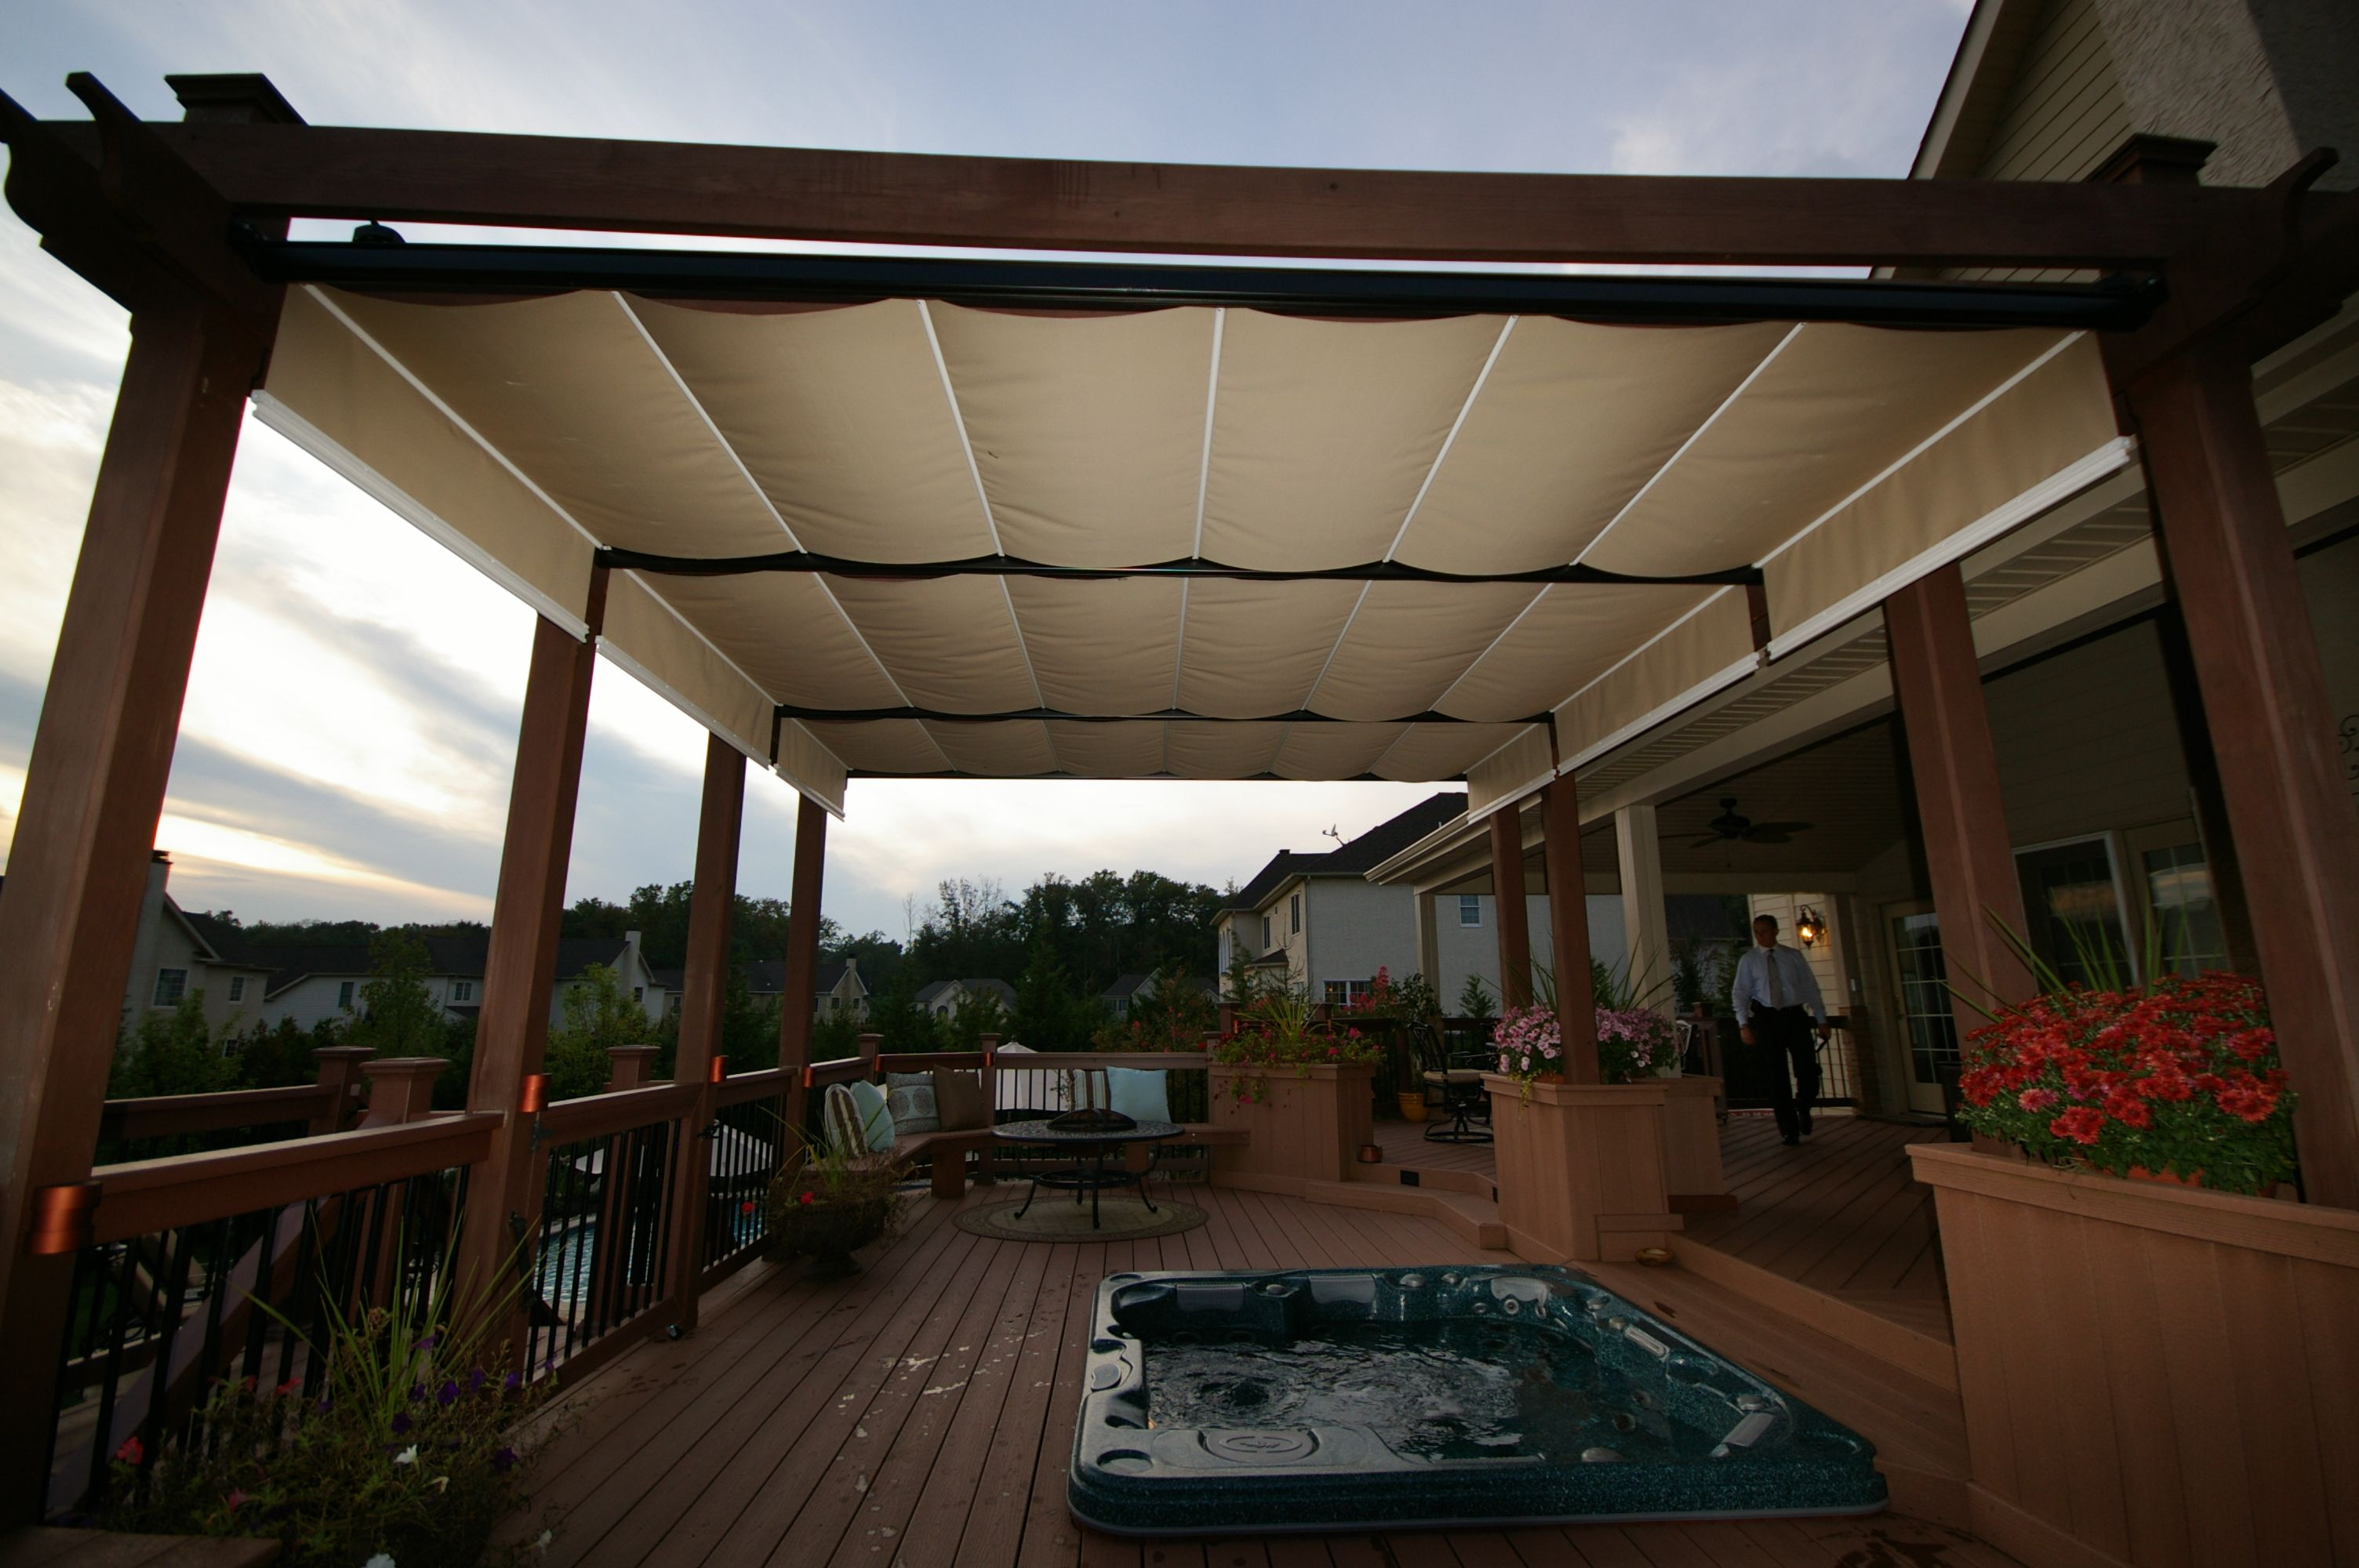 Outdoor Decks For Jacuzzis With Awning | Awning Outdoor Decoration Ideas And  Styles Marvelous White Wood